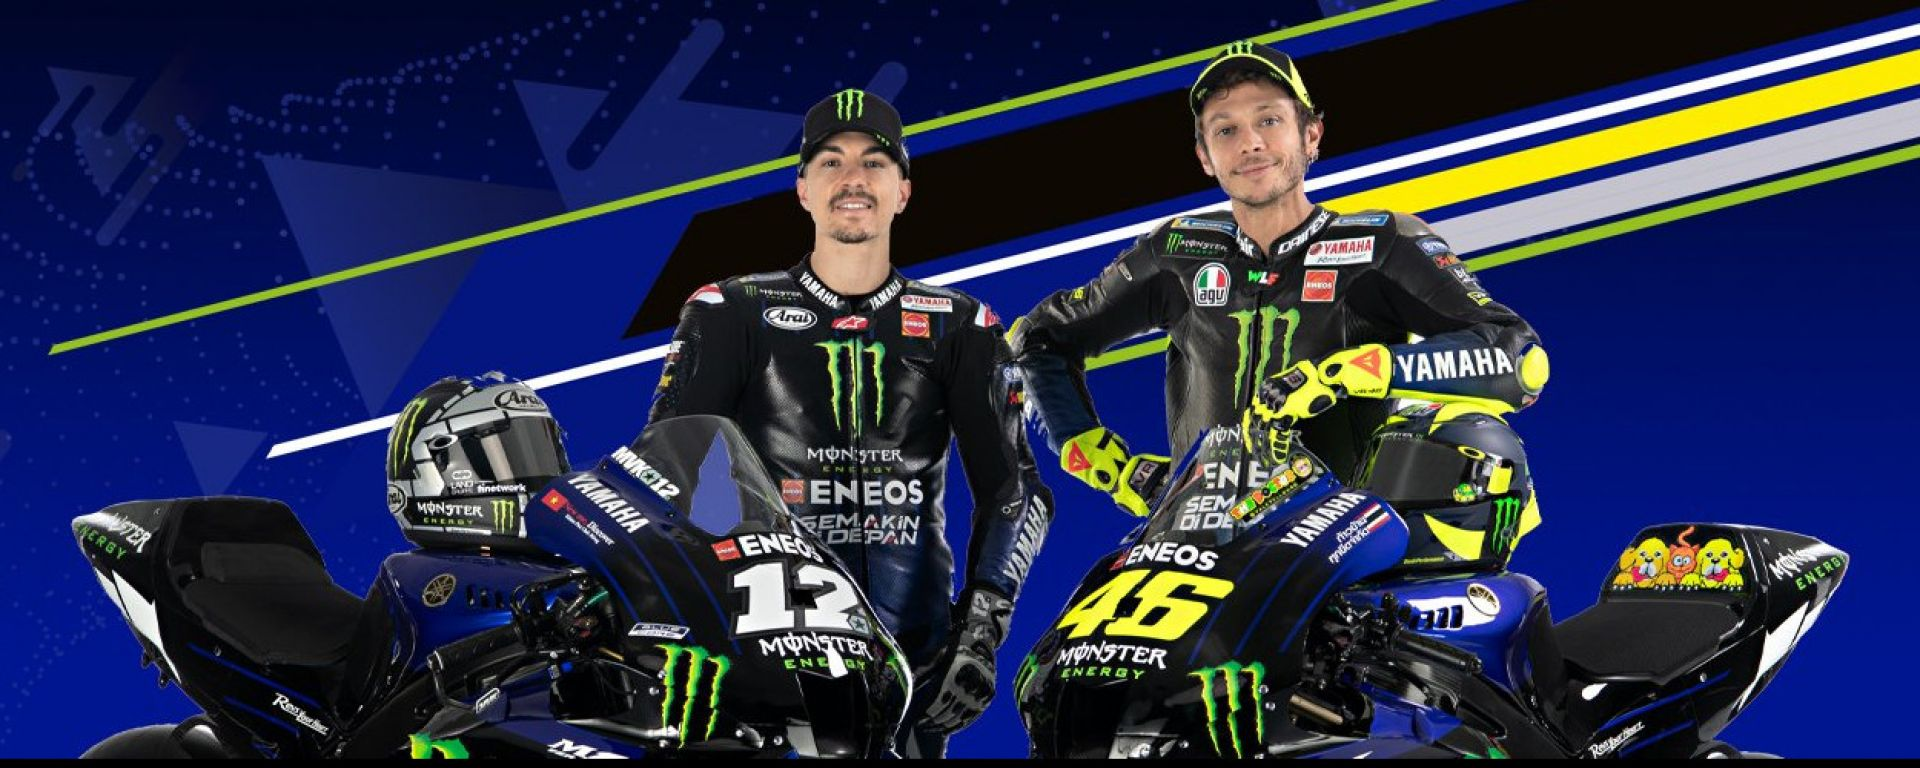 Monster Energy Yamaha Factory Racing 2020, Maverick Vinales e Valentino Rossi